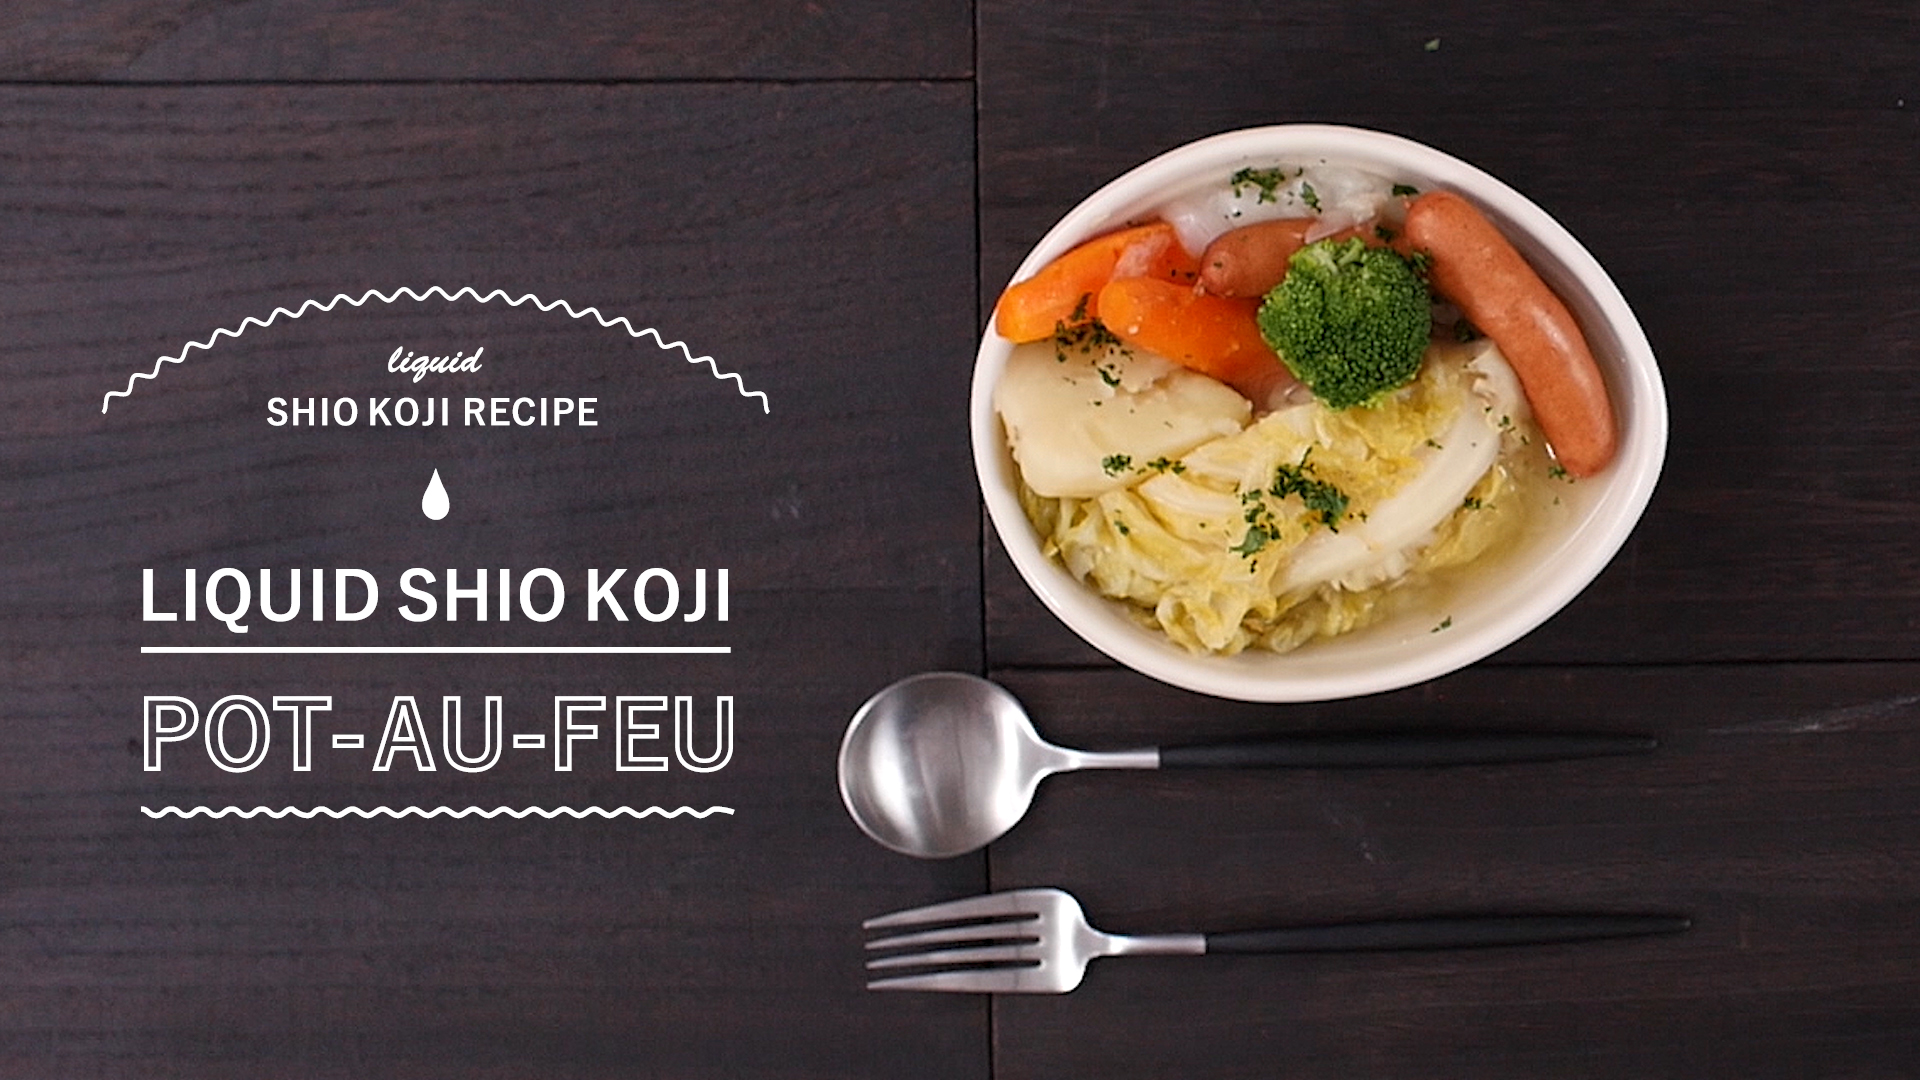 【LIQUID SHIO KOJI RECIPE POT-AU-FEU】 Use Liquid Shio Koji = Vegetables More Tasty!